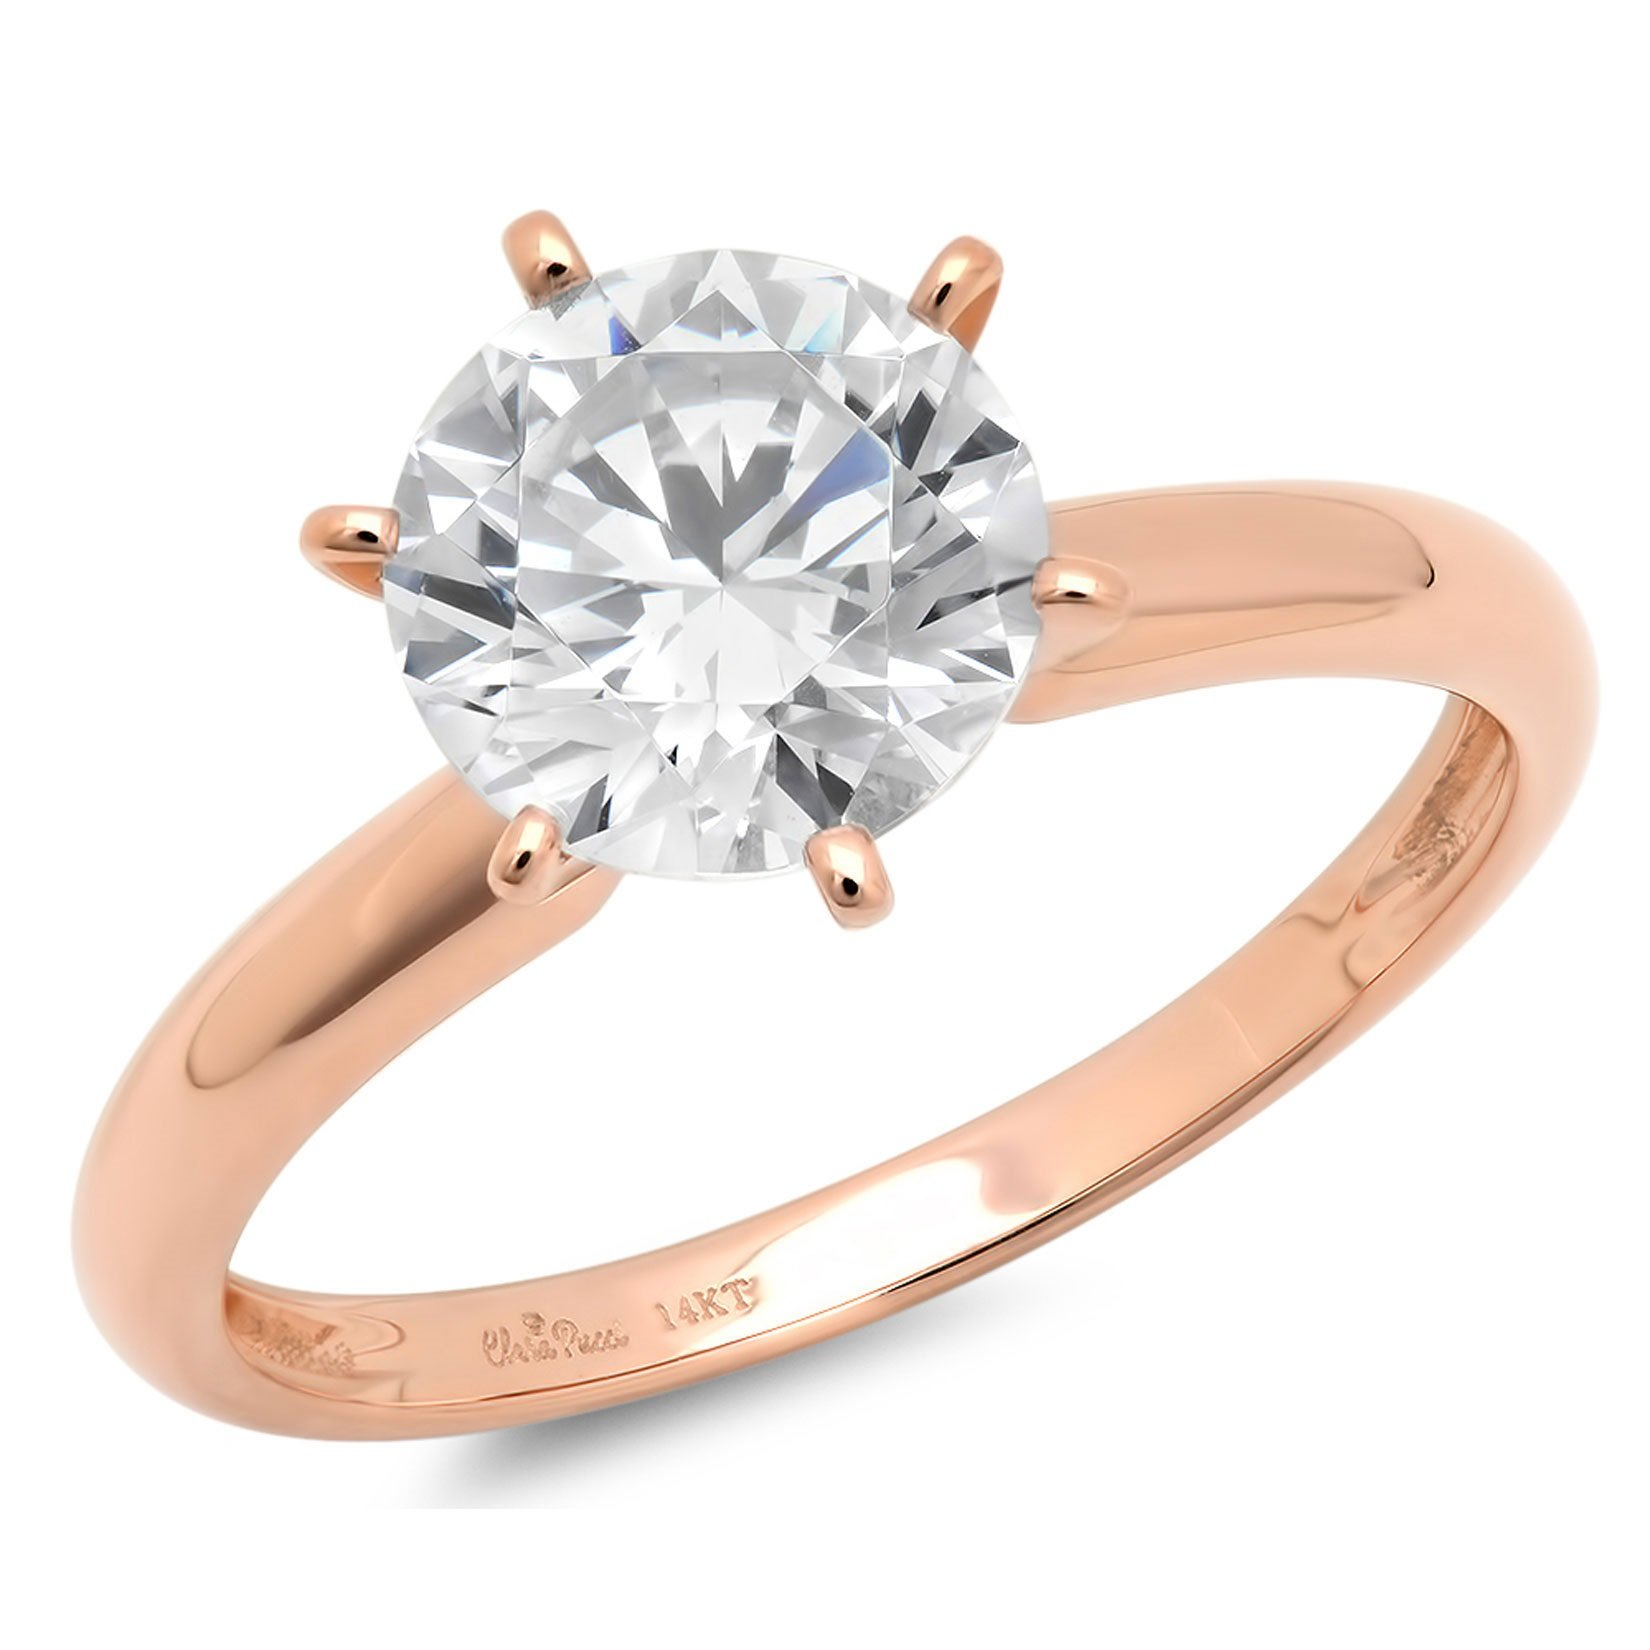 1.0 ct Brilliant Round Cut Solitaire Highest Quality moissanite Engagement Wedding Bridal Promise Anniversary Ring in Solid Real 14k Rose Gold for Women